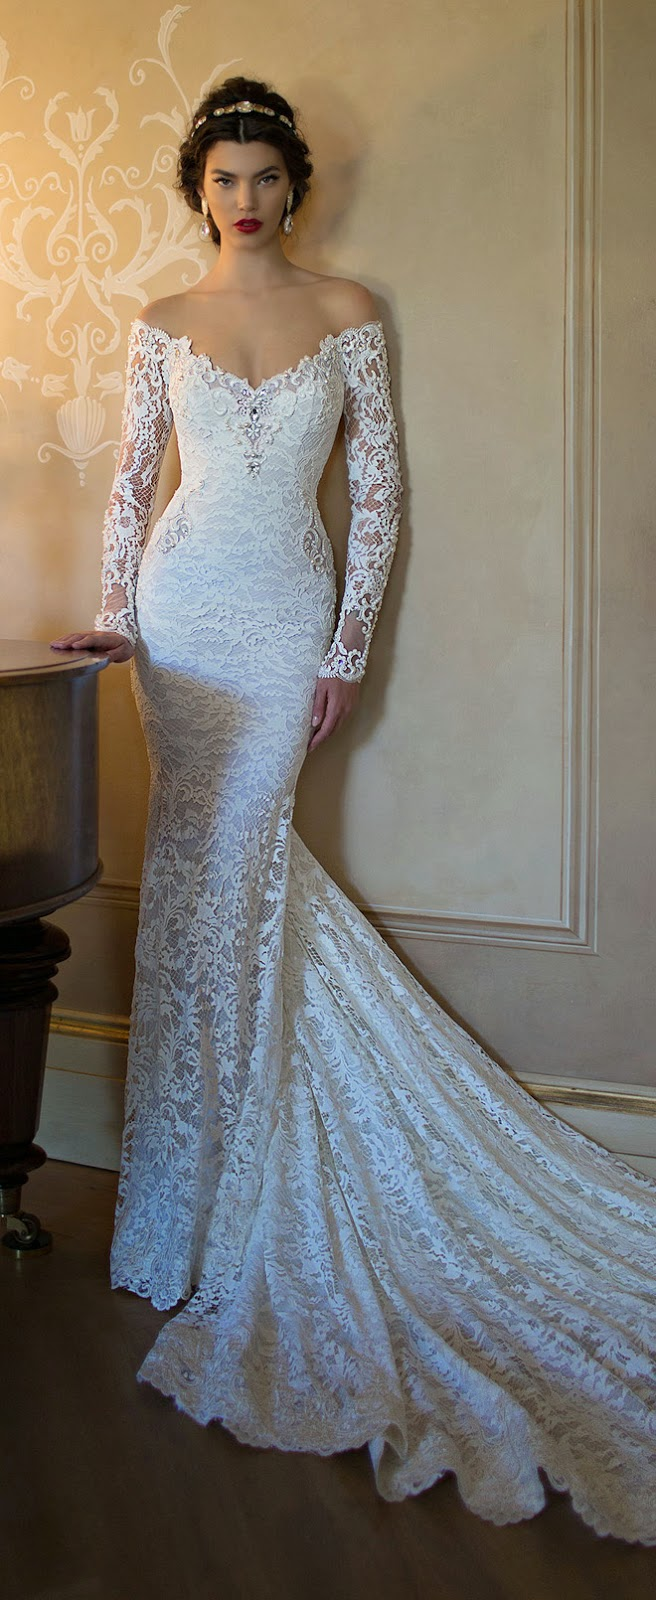 The Best Wedding Dress Designers